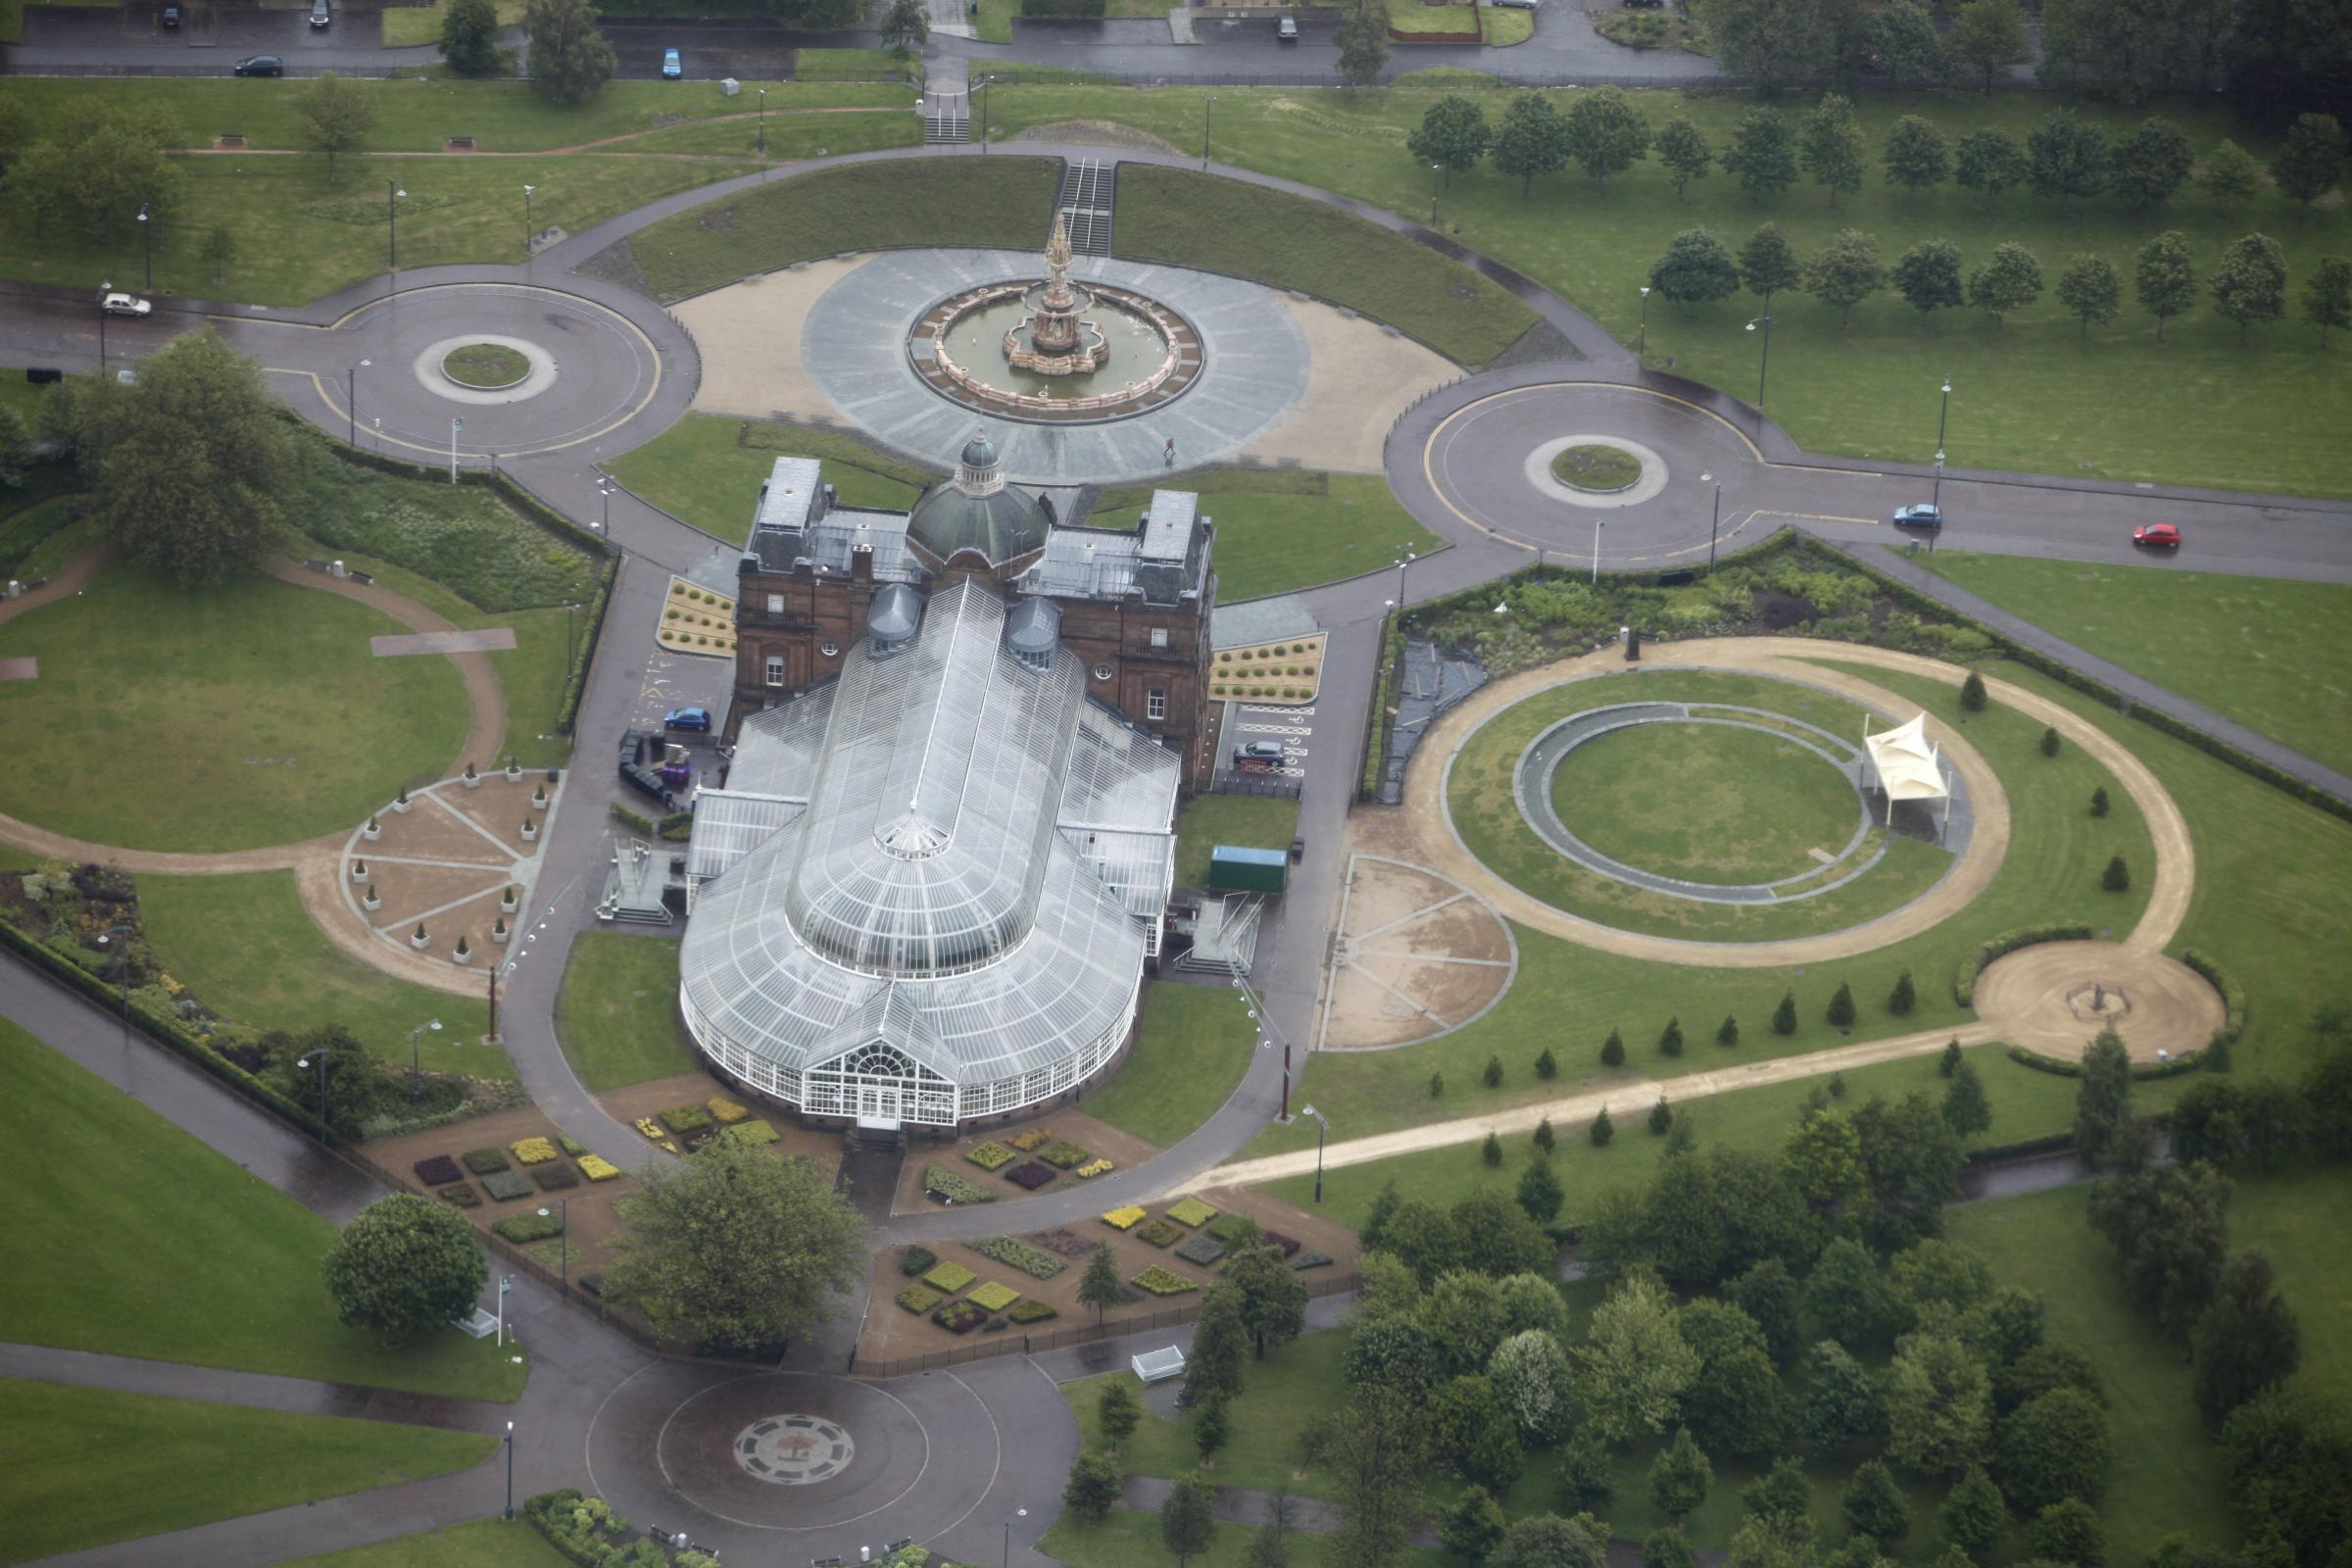 The People's Palace and Glasgow Green.